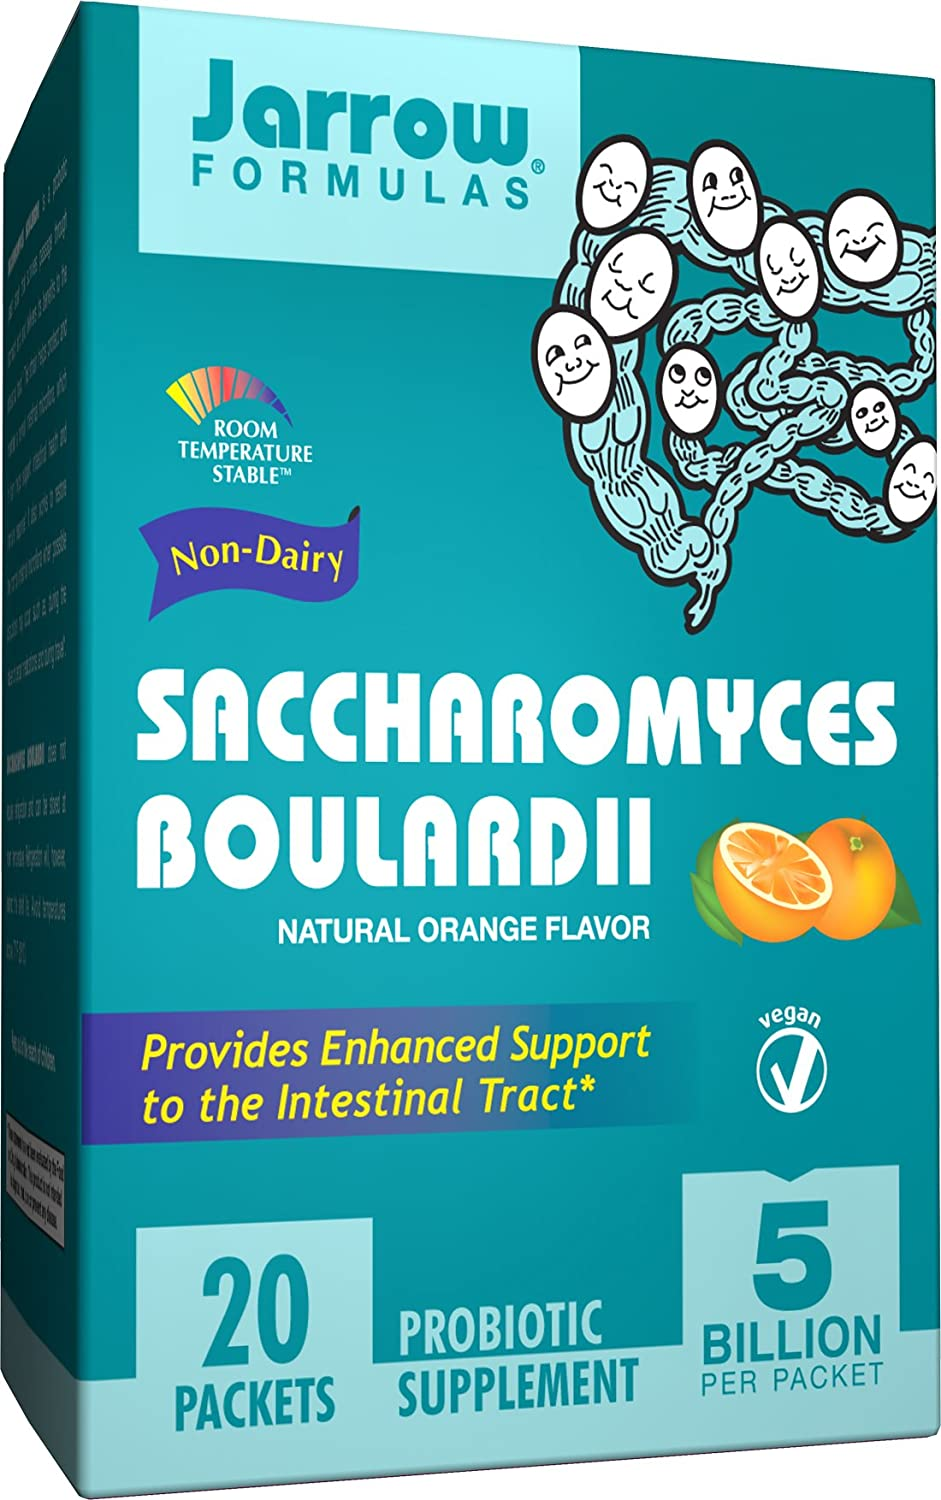 все цены на Saccharomyces Boulardii, 5 Billion Organisms Per Packet,  20 Count (Cool Ship, Pack of 3) онлайн